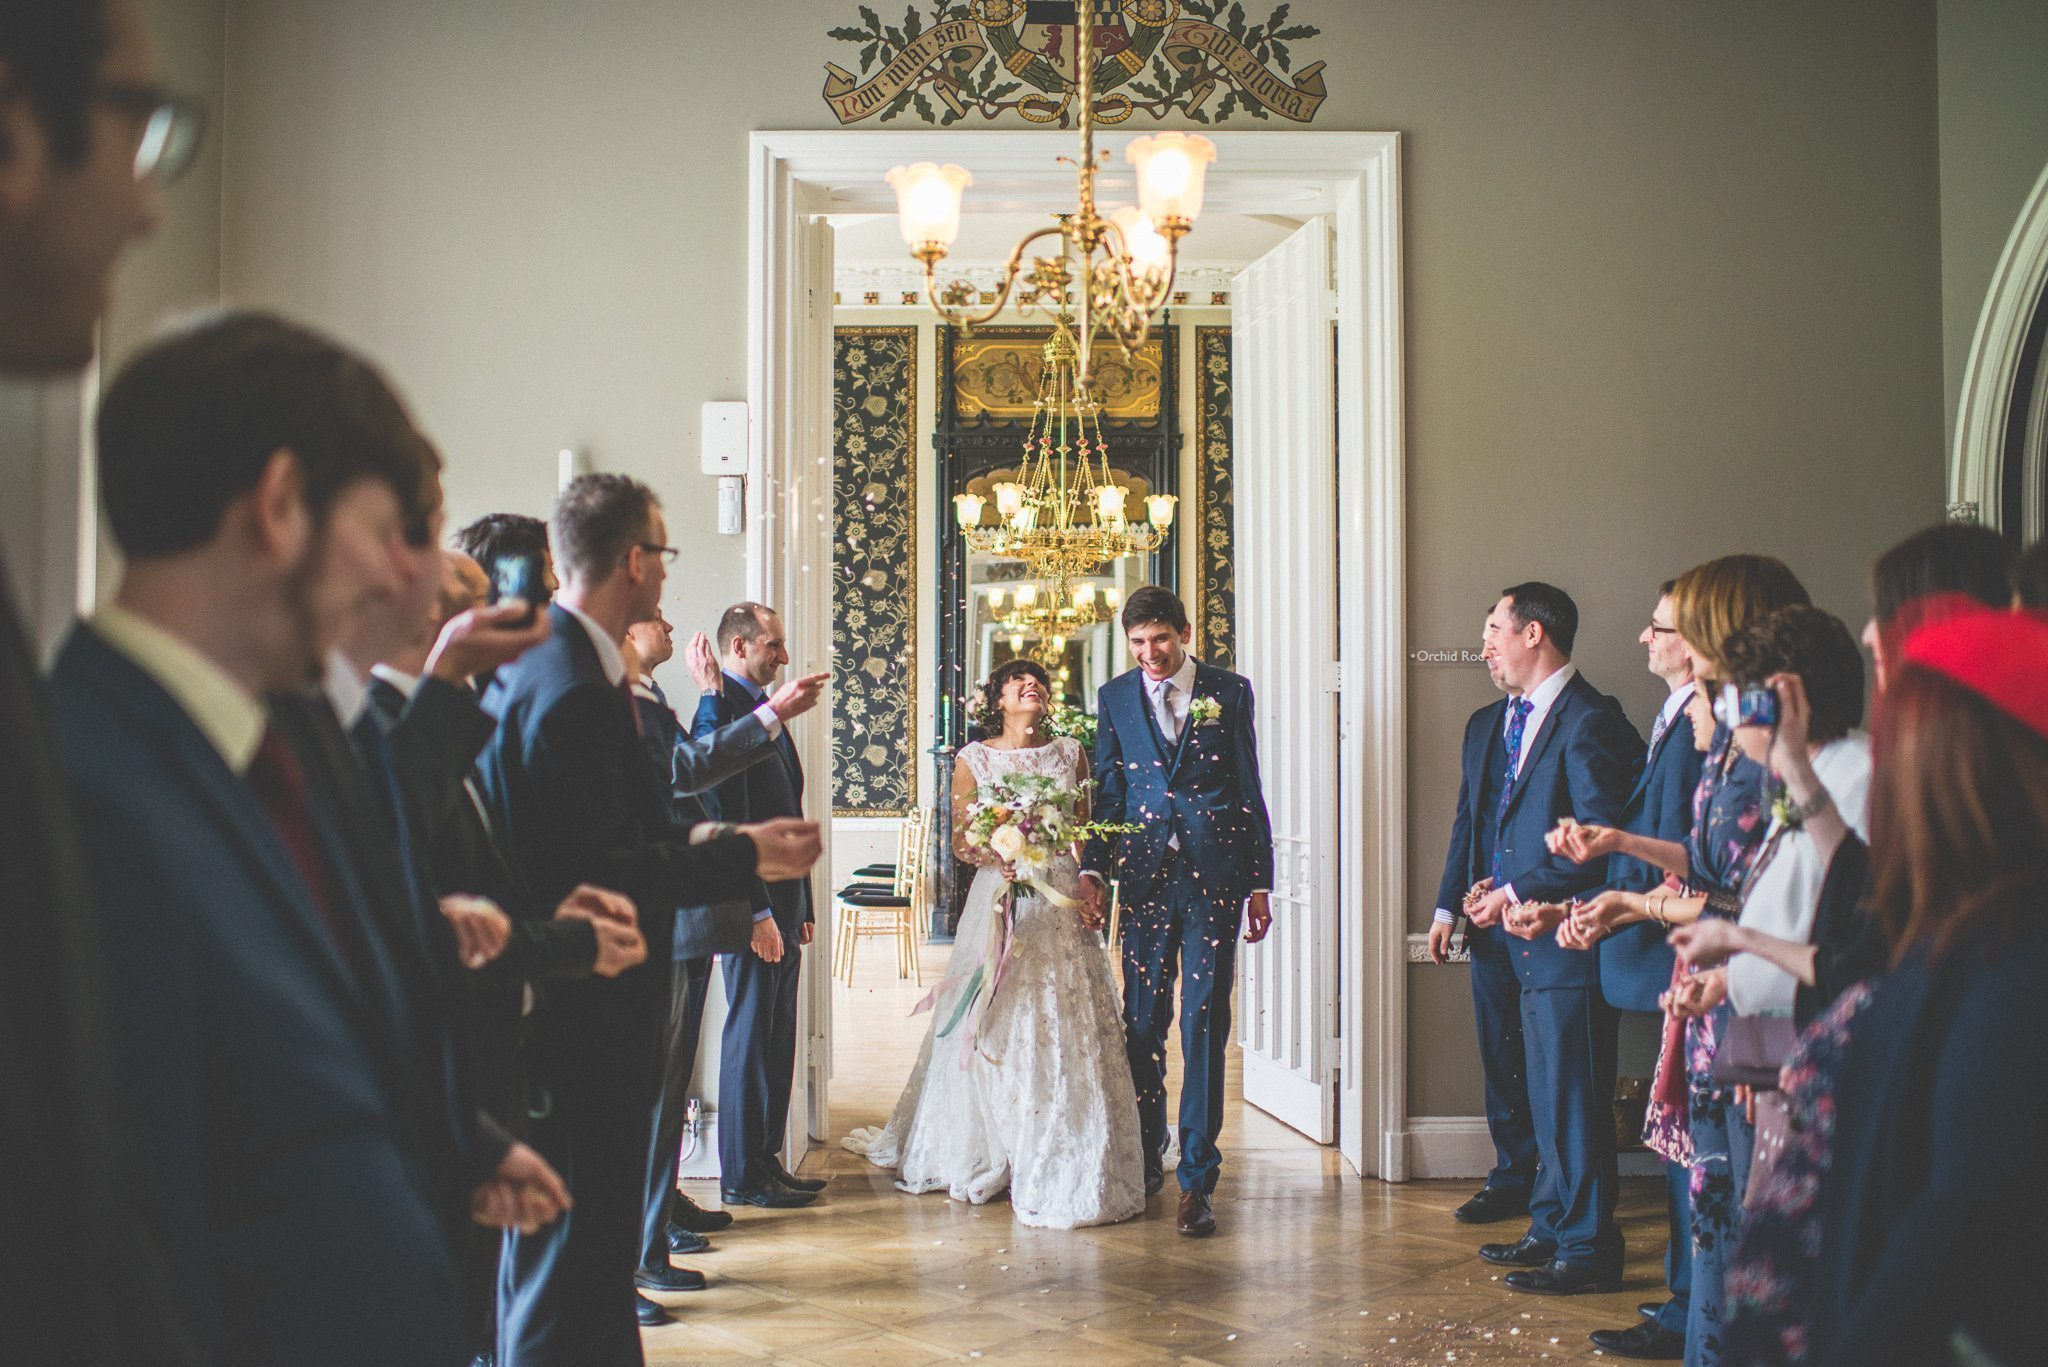 The couple emerge from the ceremony room in a shower of petal confetti